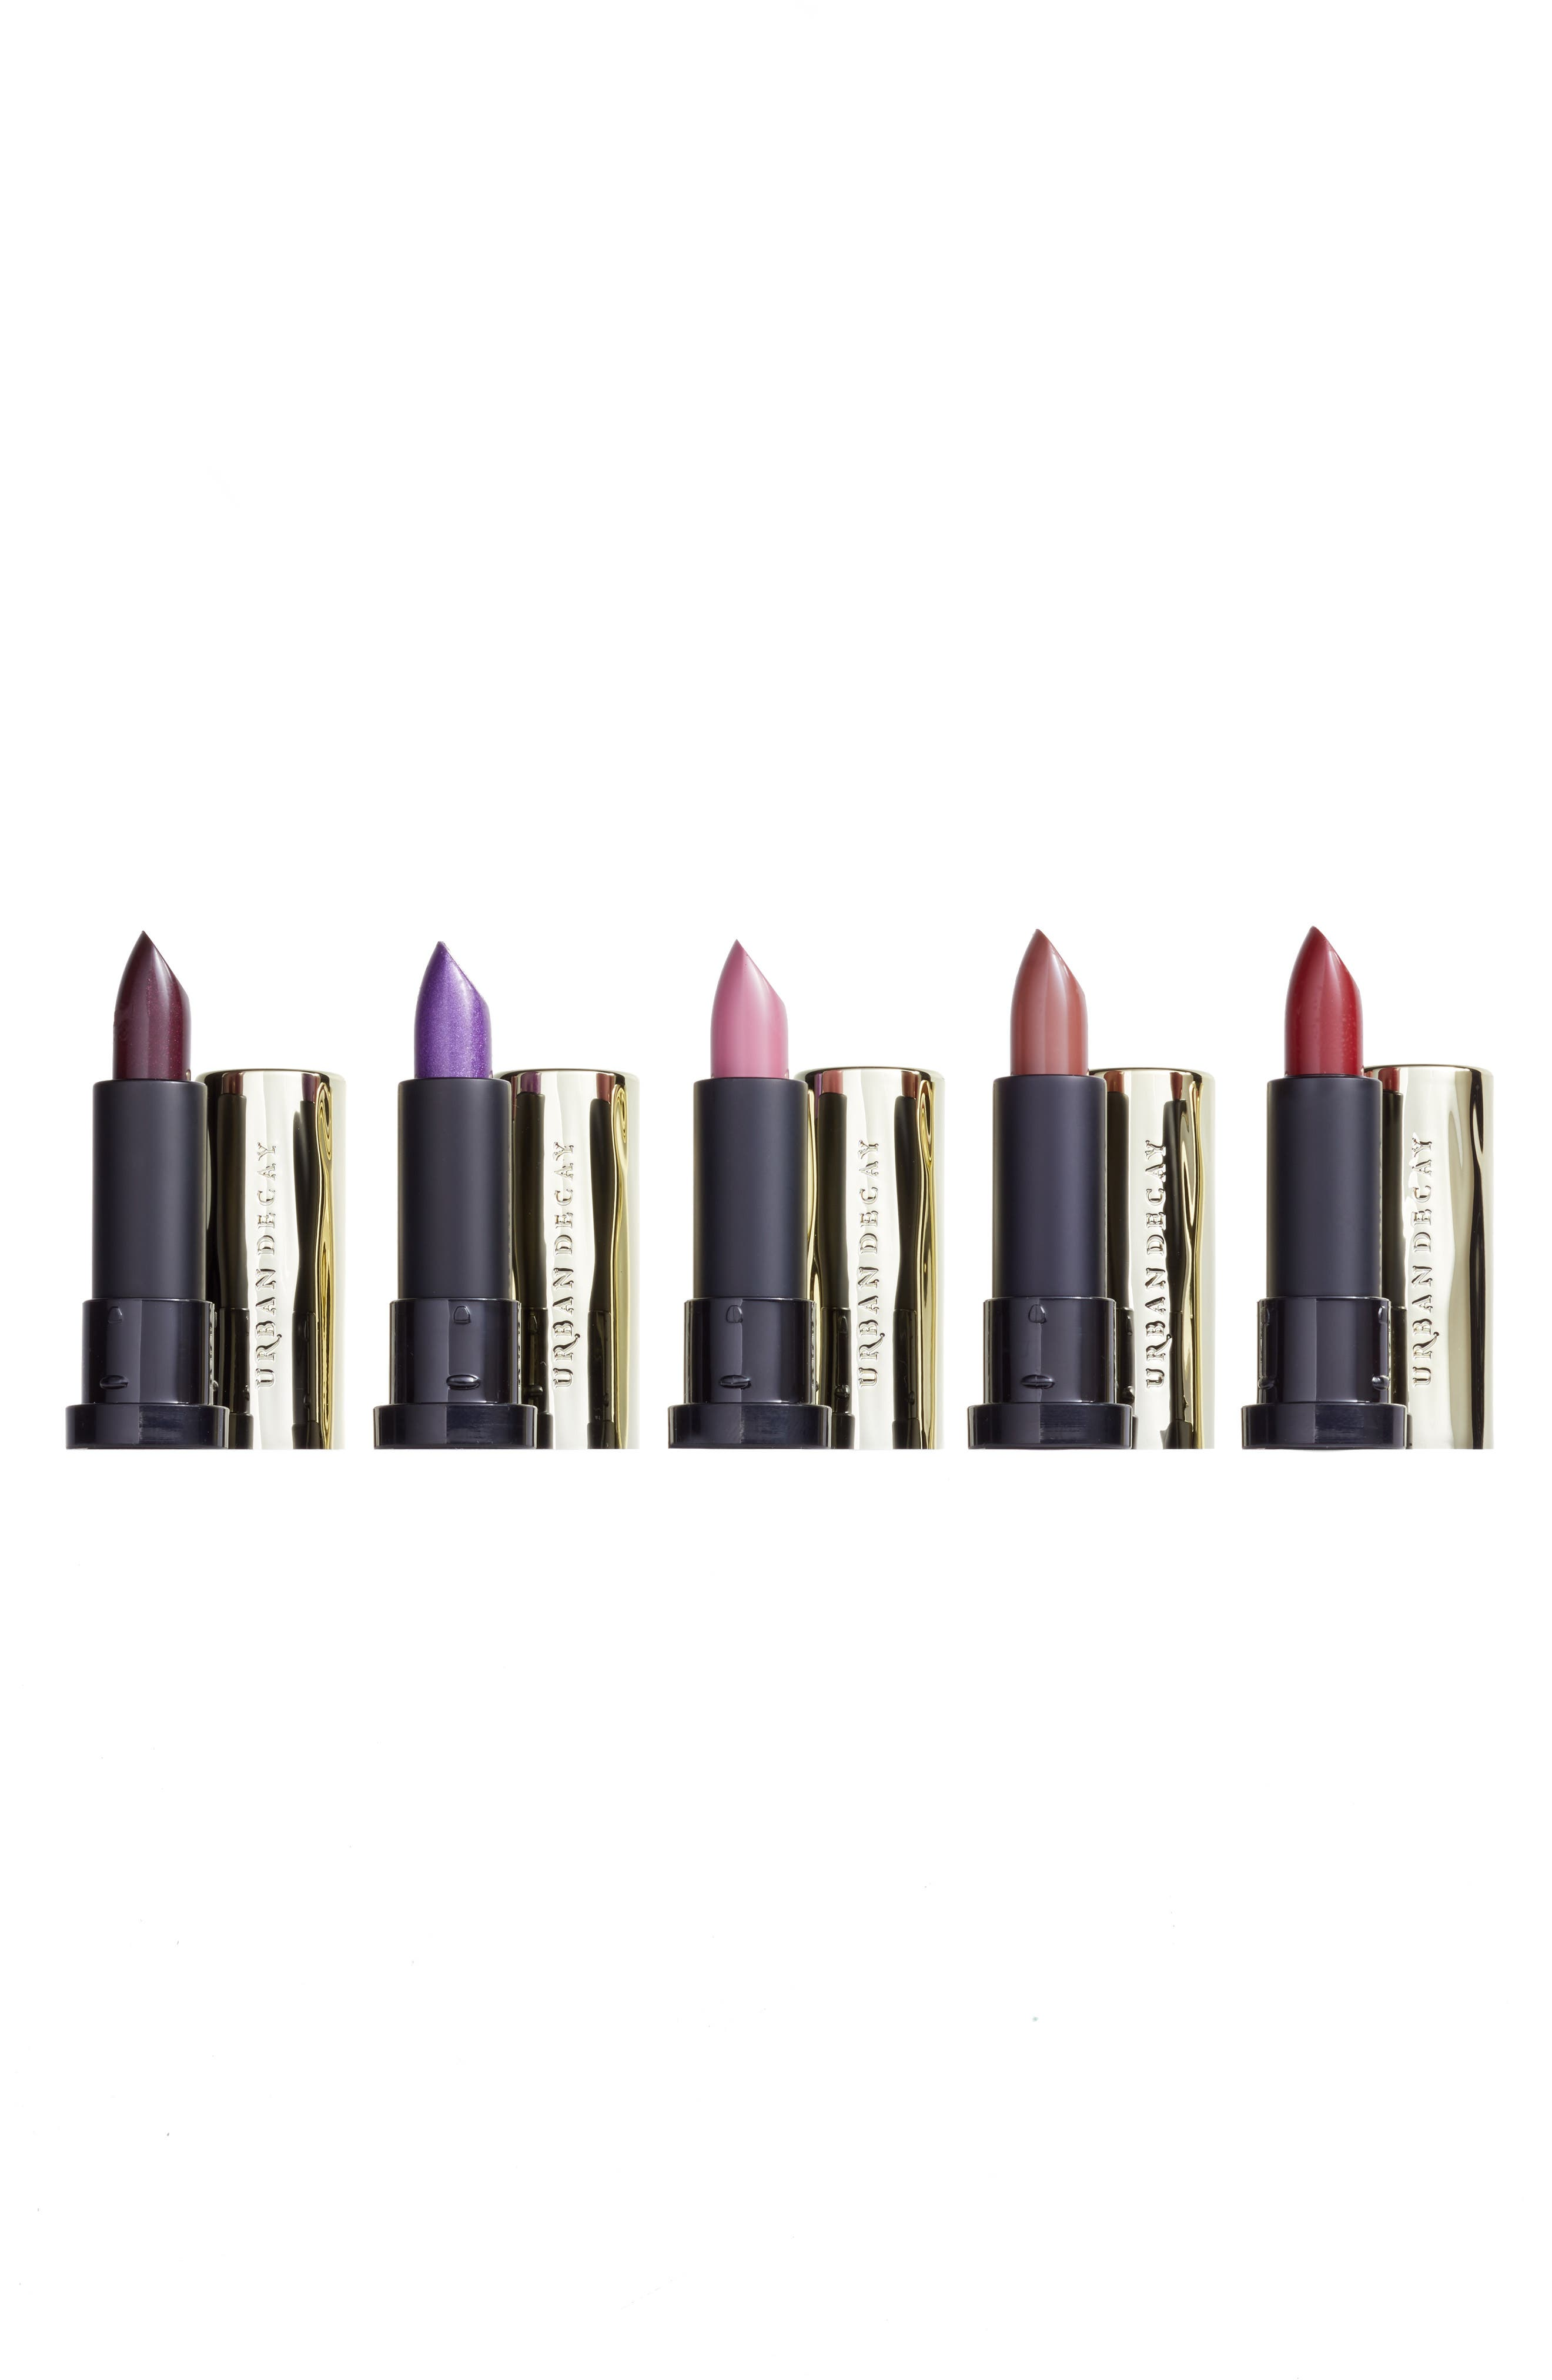 Alternate Image 1 Selected - Urban Decay Little Vices 5-Piece Lipstick Sample Set